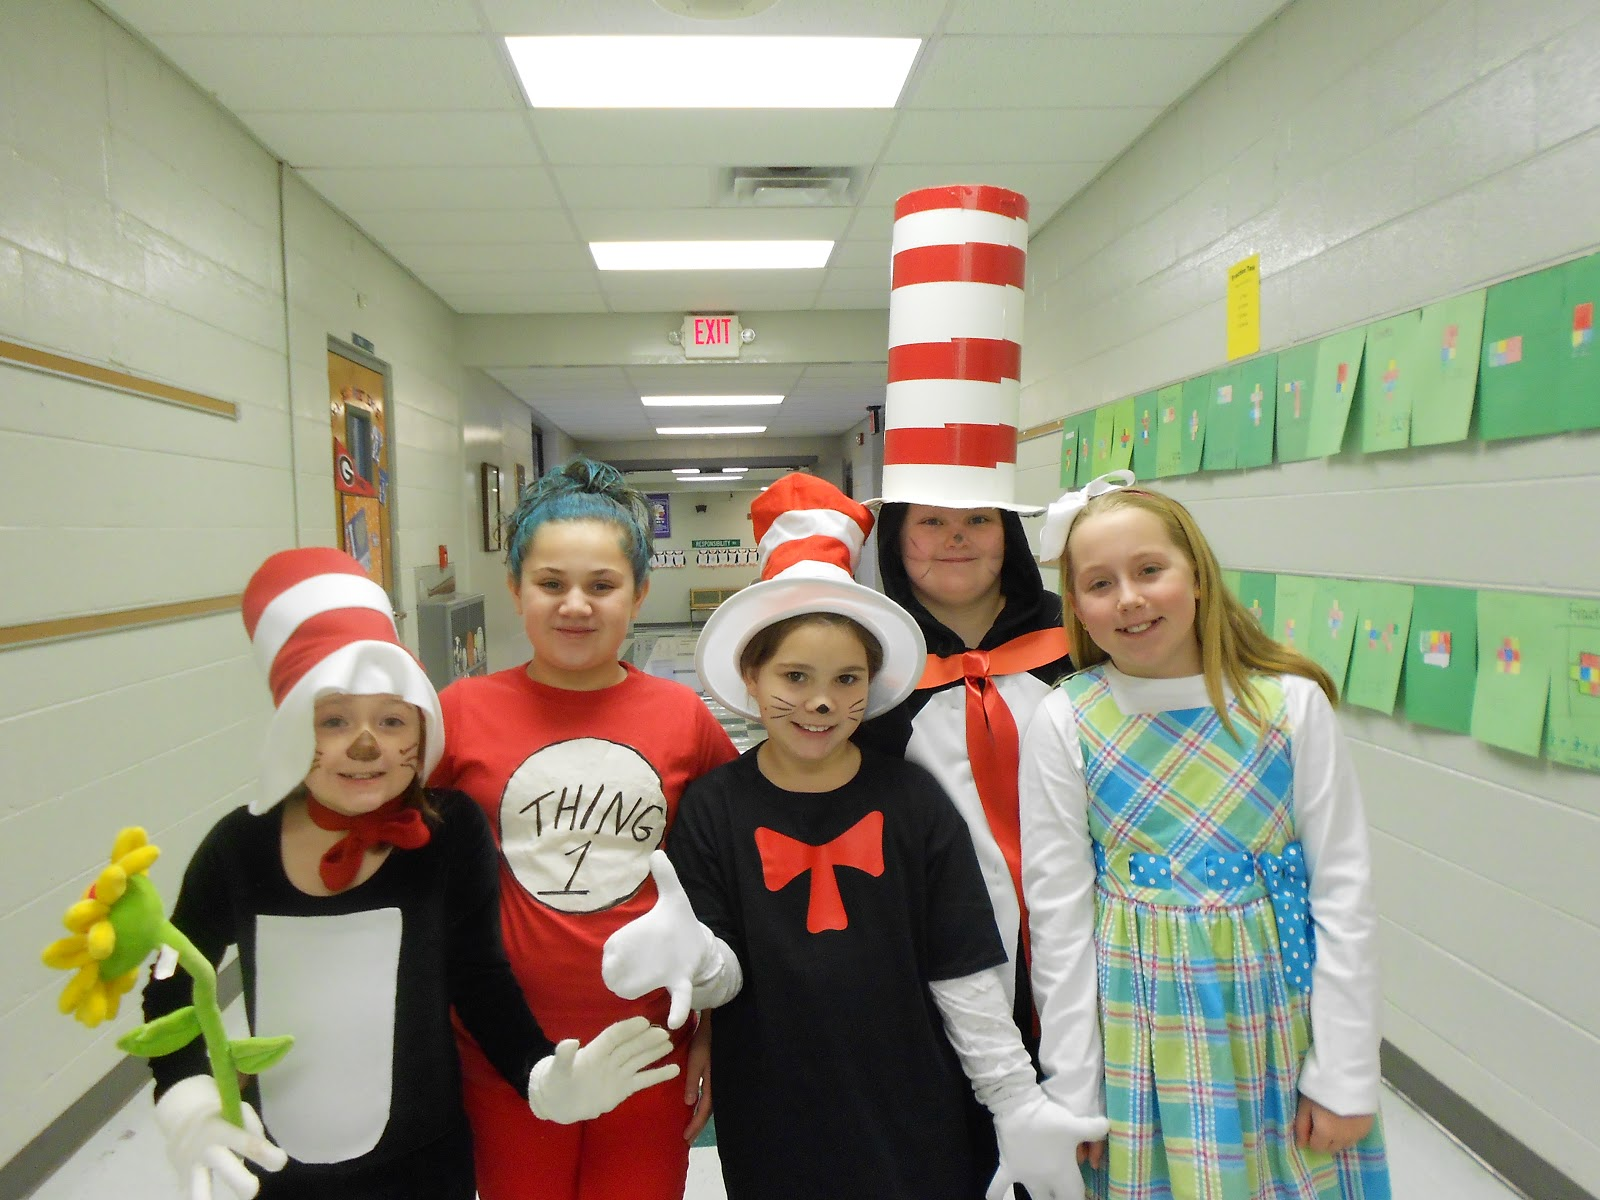 Dr. Seuss Day- Book Character Costume Ideas  sc 1 st  Mrs. McDonaldu0027s 4th Grade & Mrs. McDonaldu0027s 4th Grade: Dr. Seuss Day- Book Character Costume Ideas